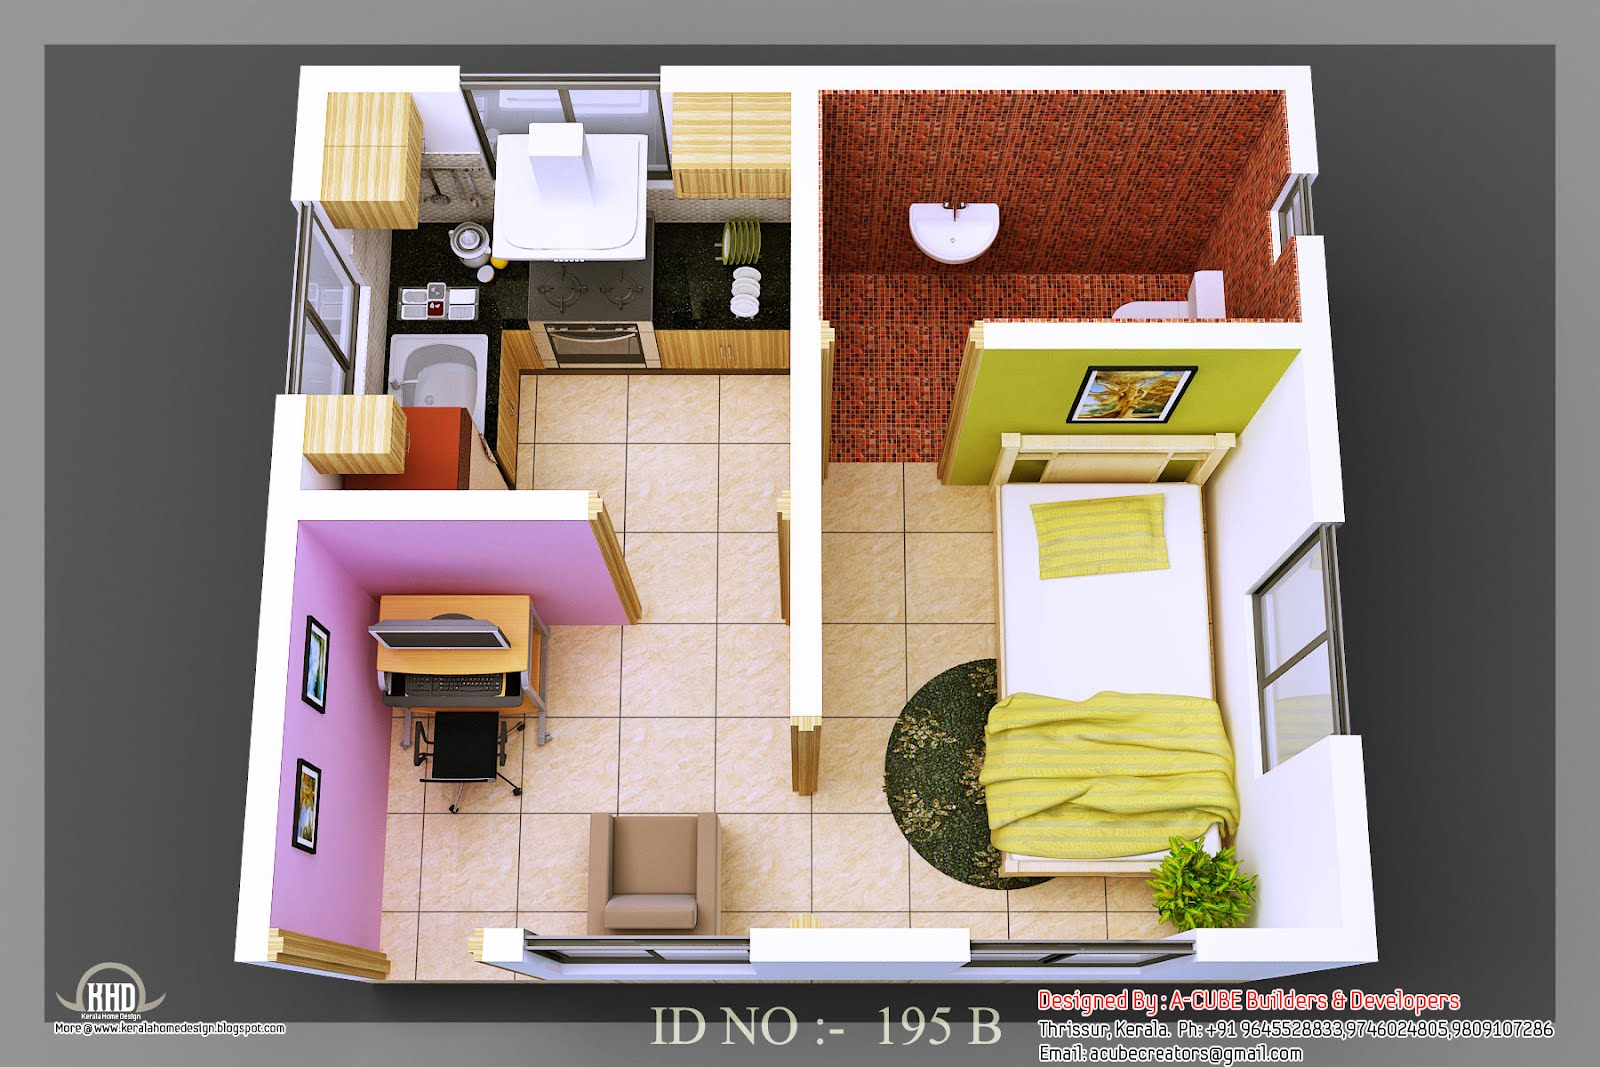 3d isometric views of small house plans a taste in heaven for Floor 3d design